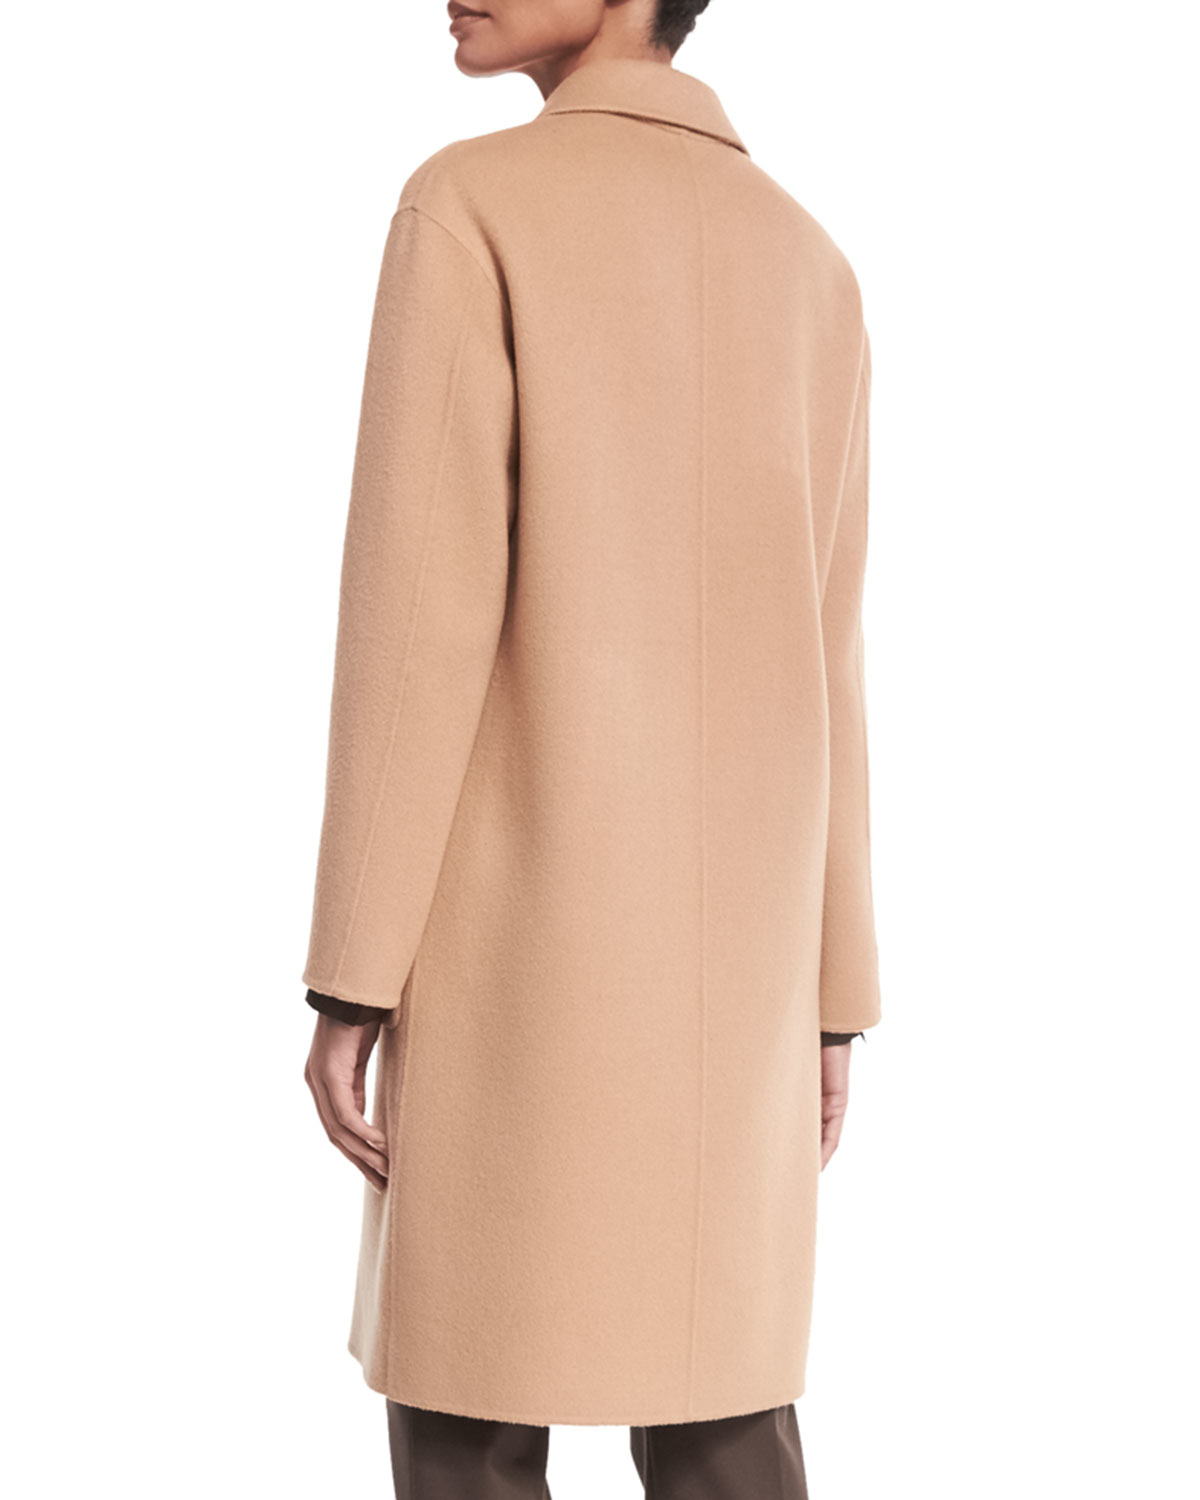 Theory Cerlita Double-face Wool/cashmere Coat in Natural | Lyst